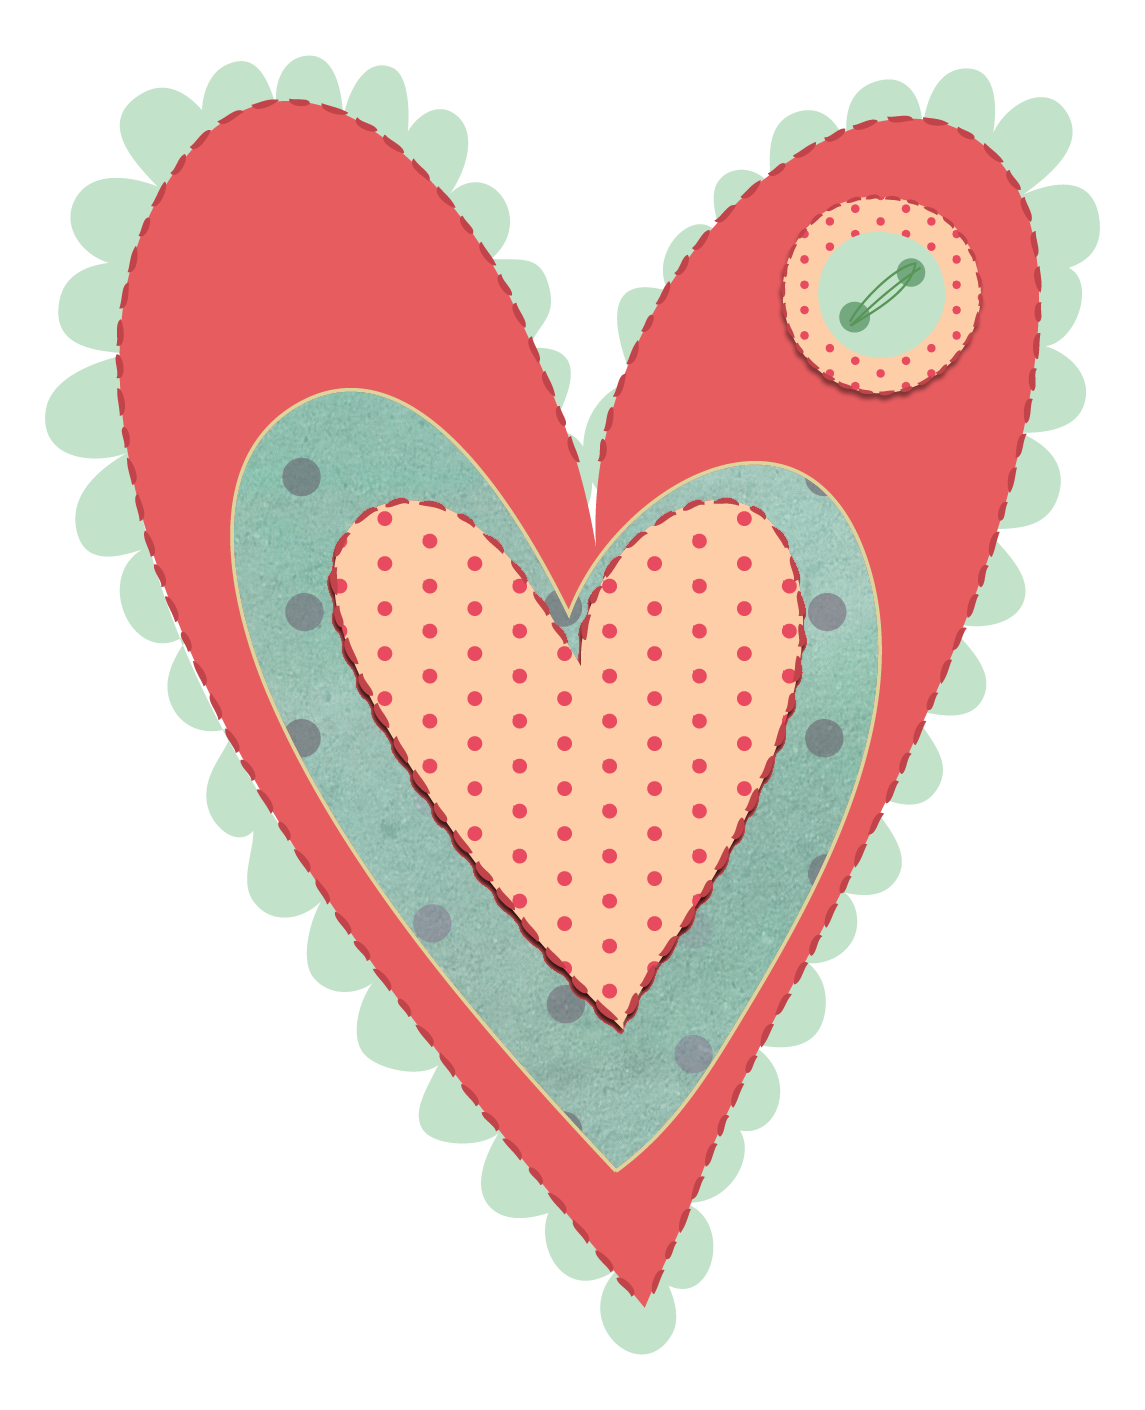 Vintage heart clipart png free library vintage heart clipart e09a6afef4cbeef190fb7df8c702ee0f - Clip Art. Net png free library